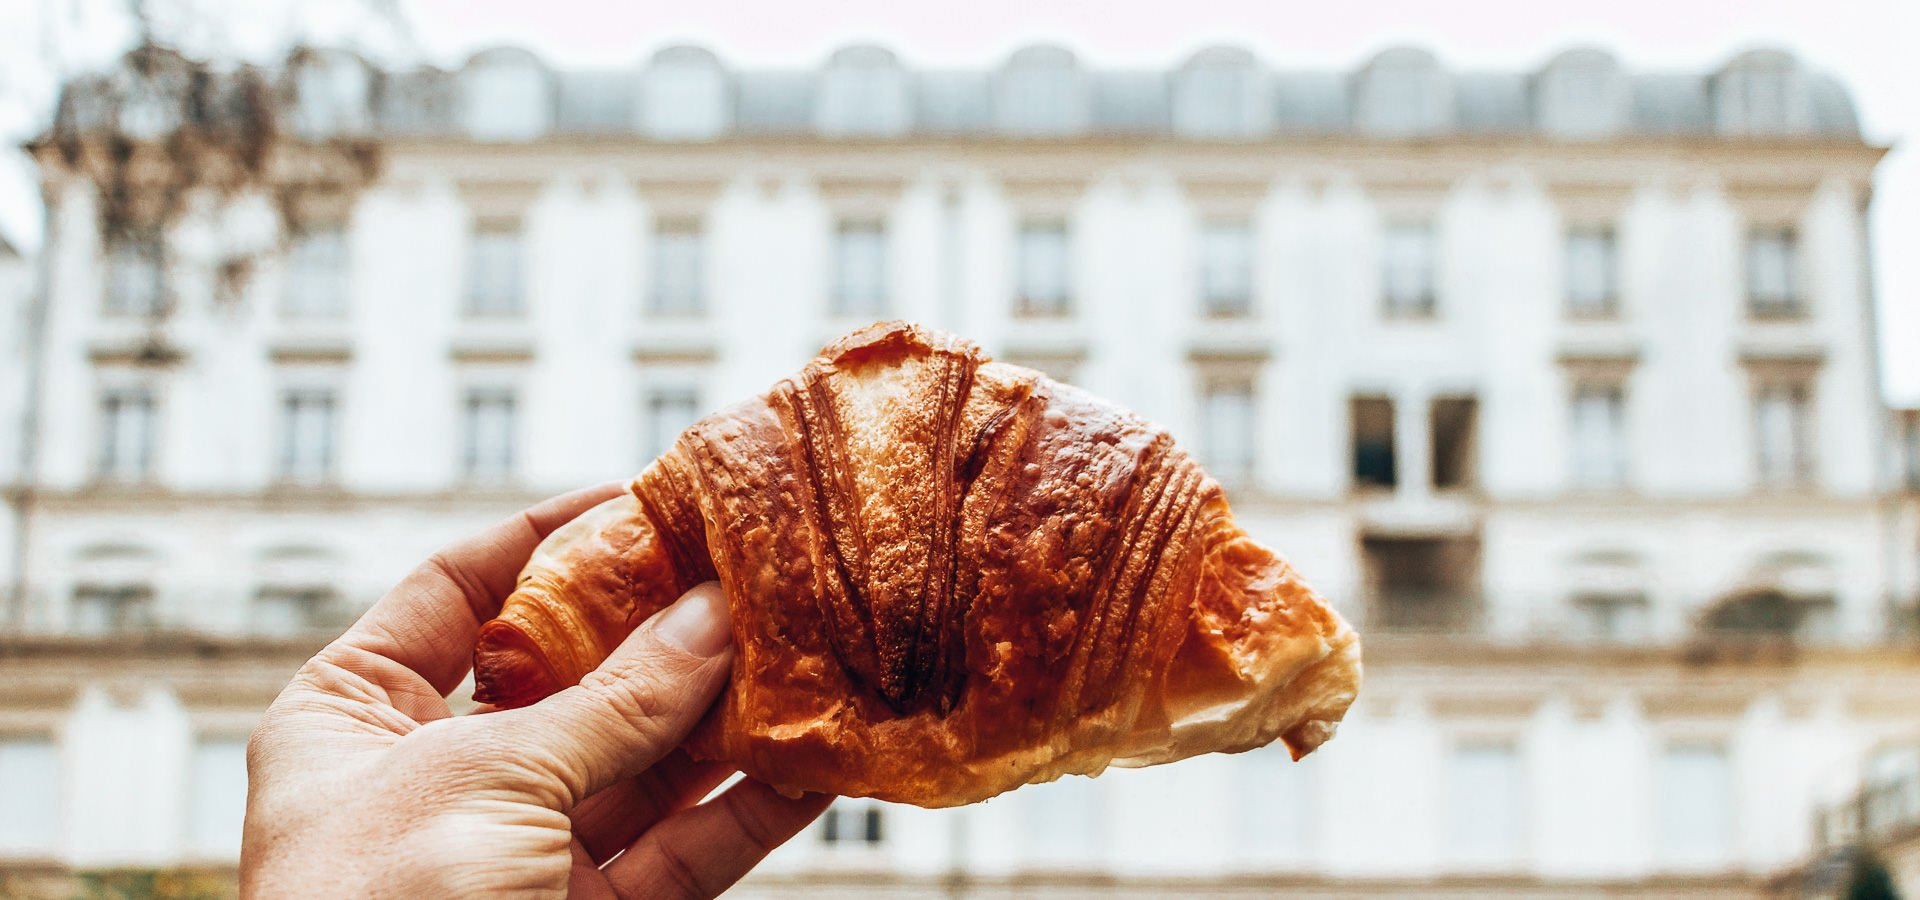 8 Of The Best Bakeries and Pâtisseries In Paris | best bakeries and pâtisseries in paris 2